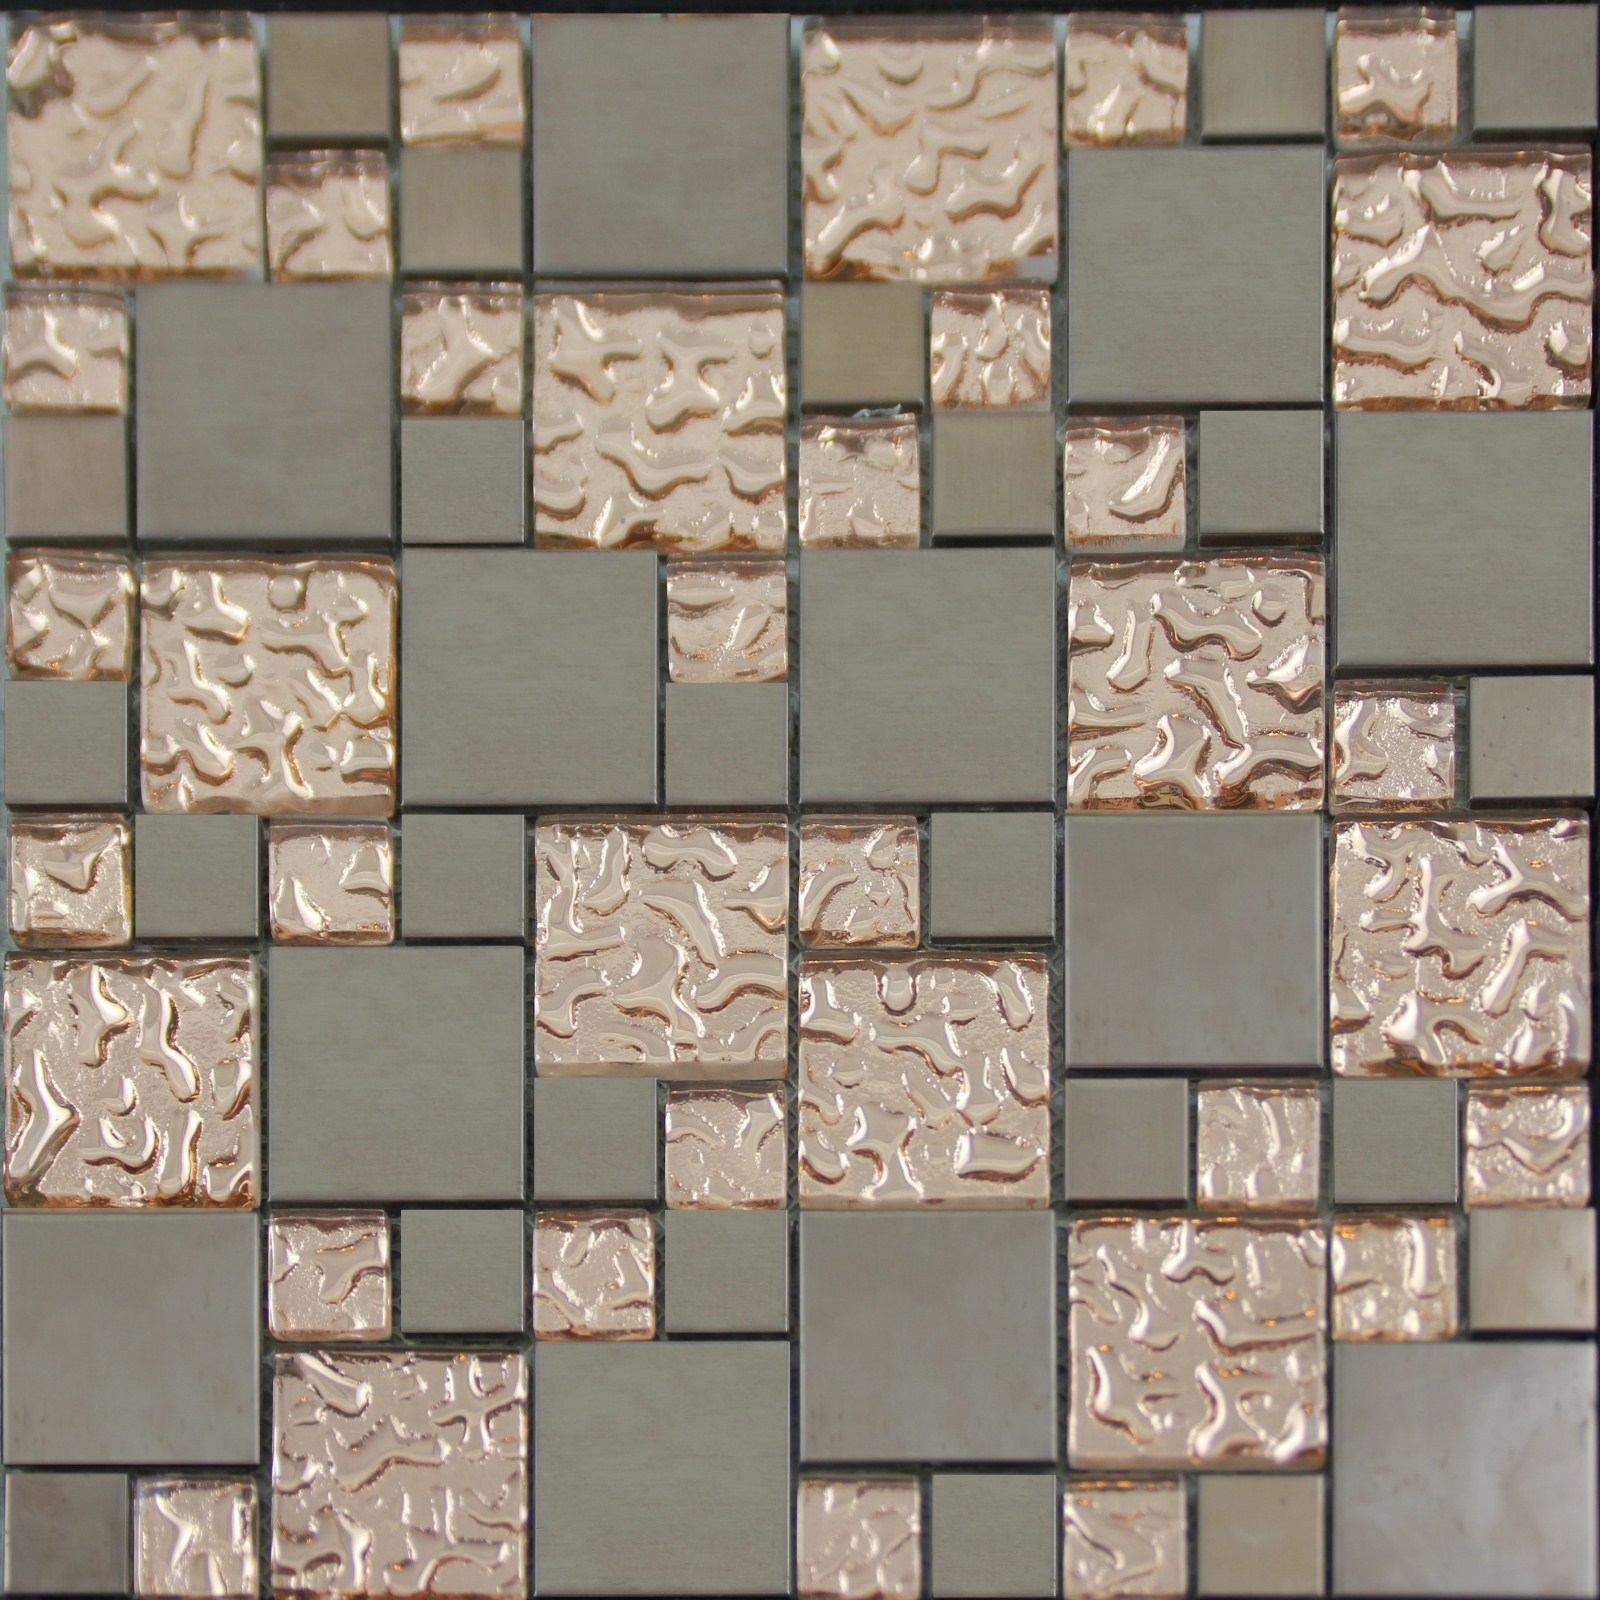 Copper glass and porcelain square mosaic tile designs plated ceramic wall tiles wall kitchen - Kitchen backsplash ceramic tile designs ...